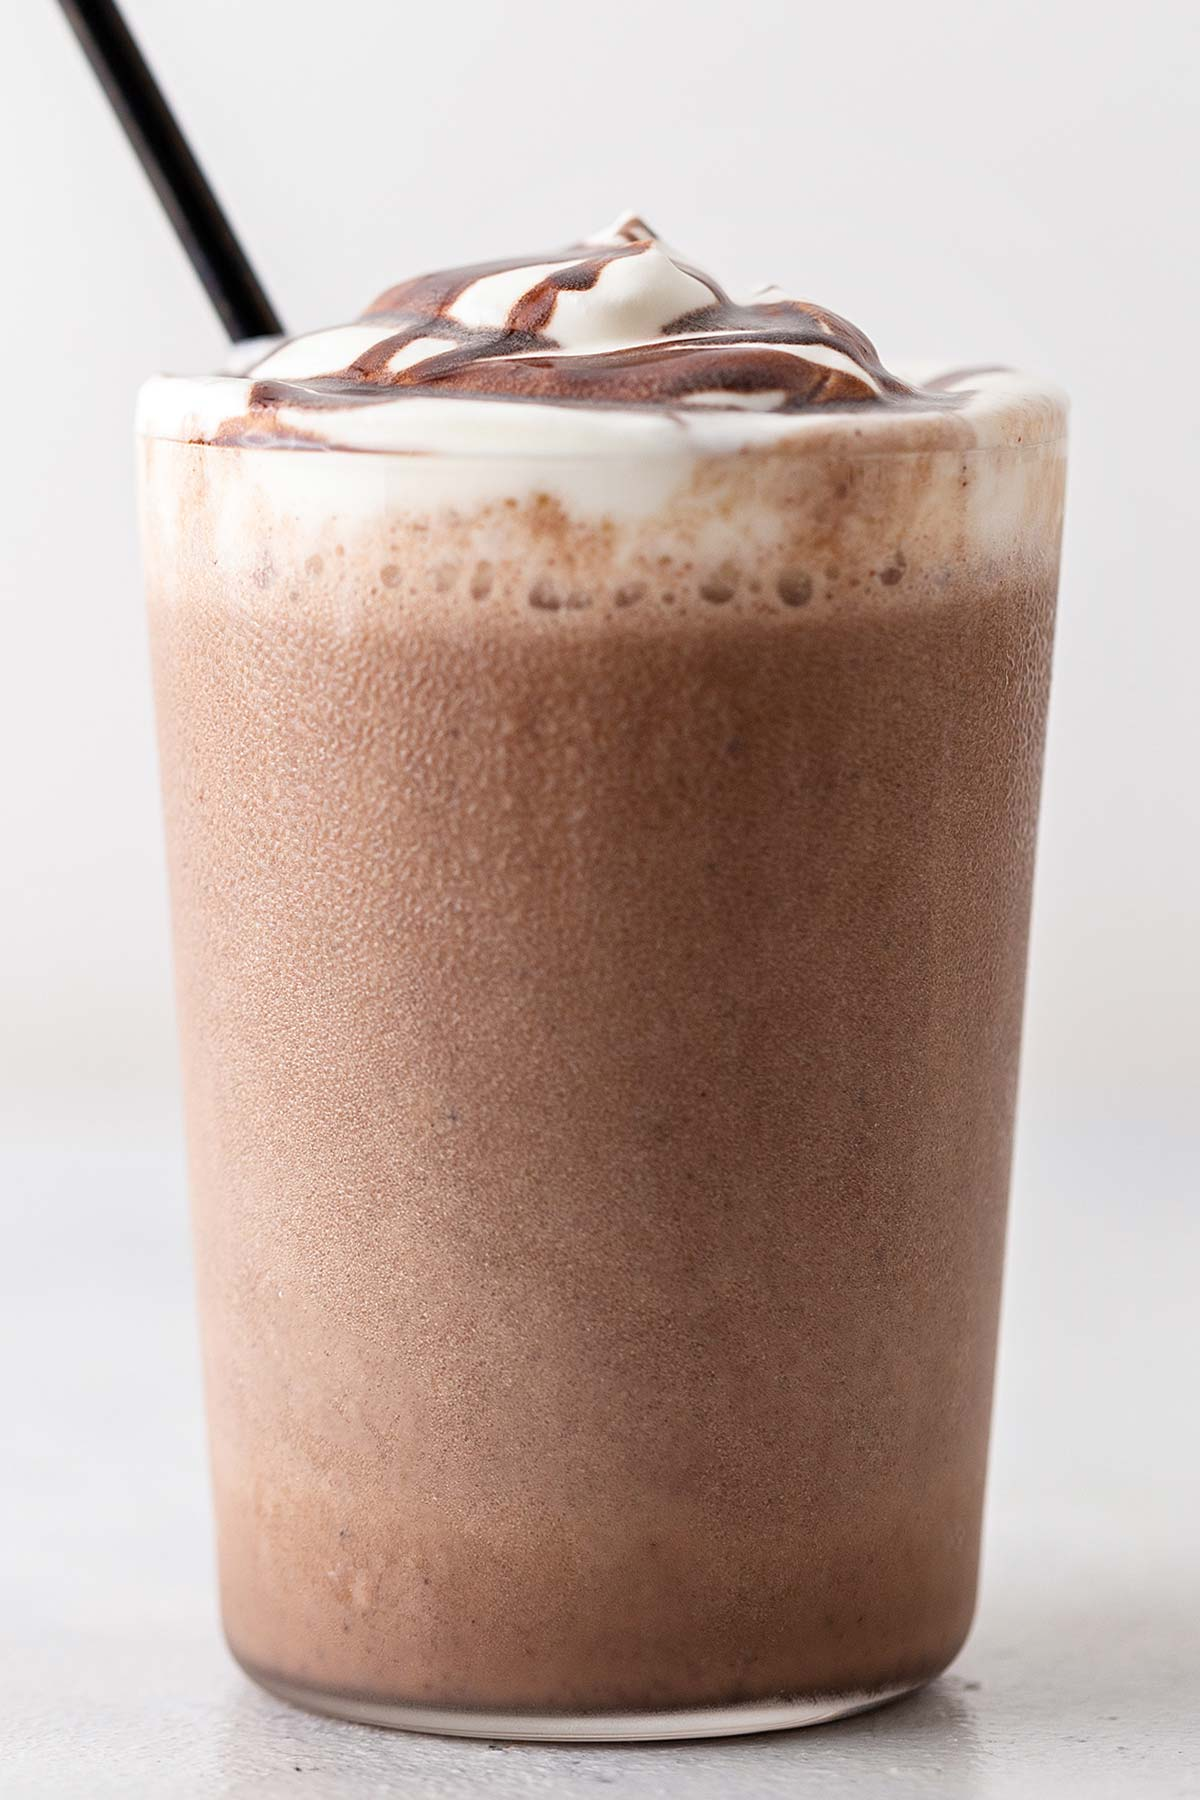 Double Chocolaty Chip Frappuccino in a cup with whipped cream and chocolate drizzle.